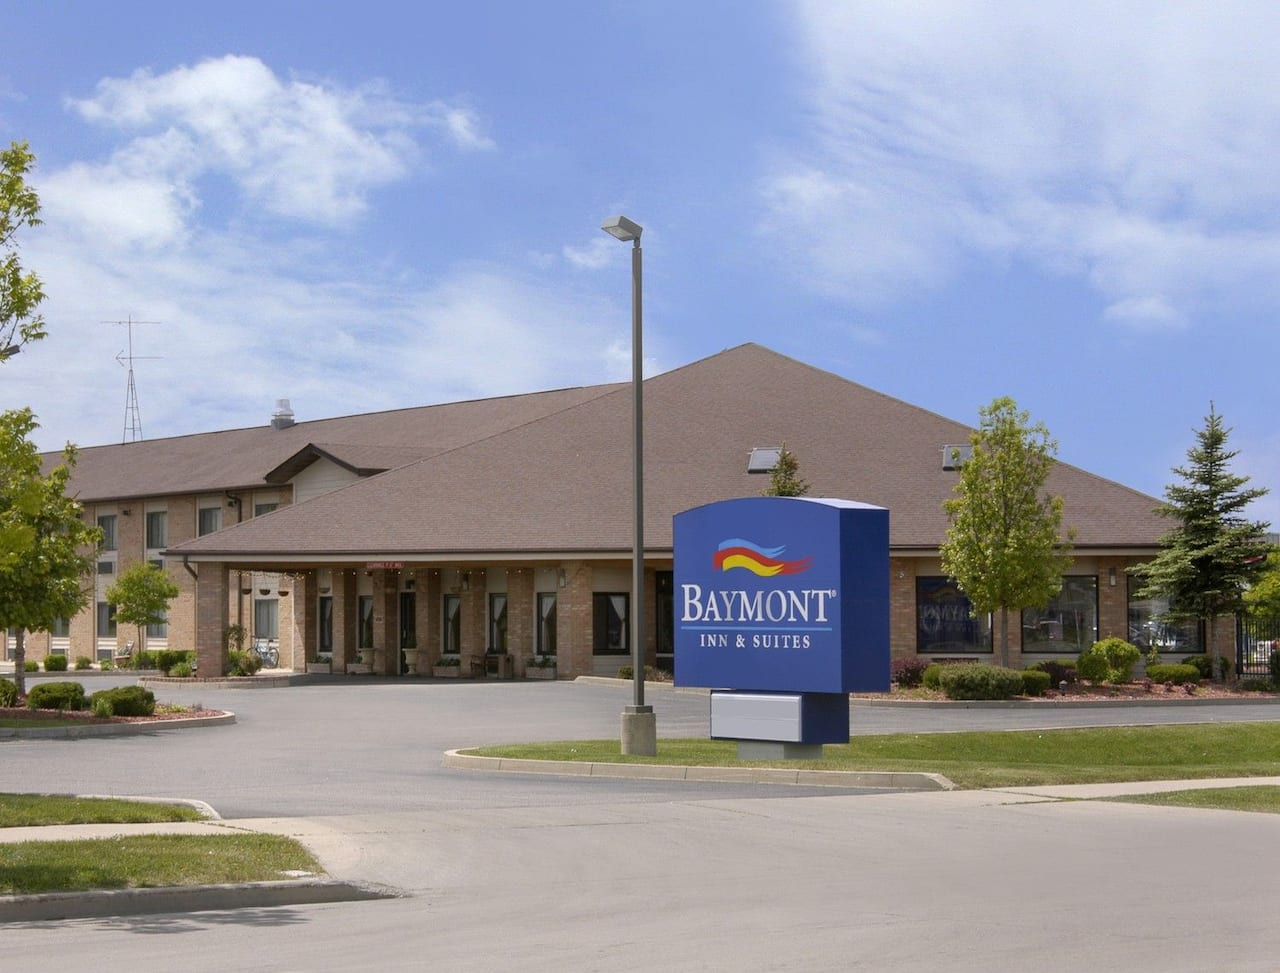 Baymont Inn & Suites Whitewater in Johnson Creek, Wisconsin